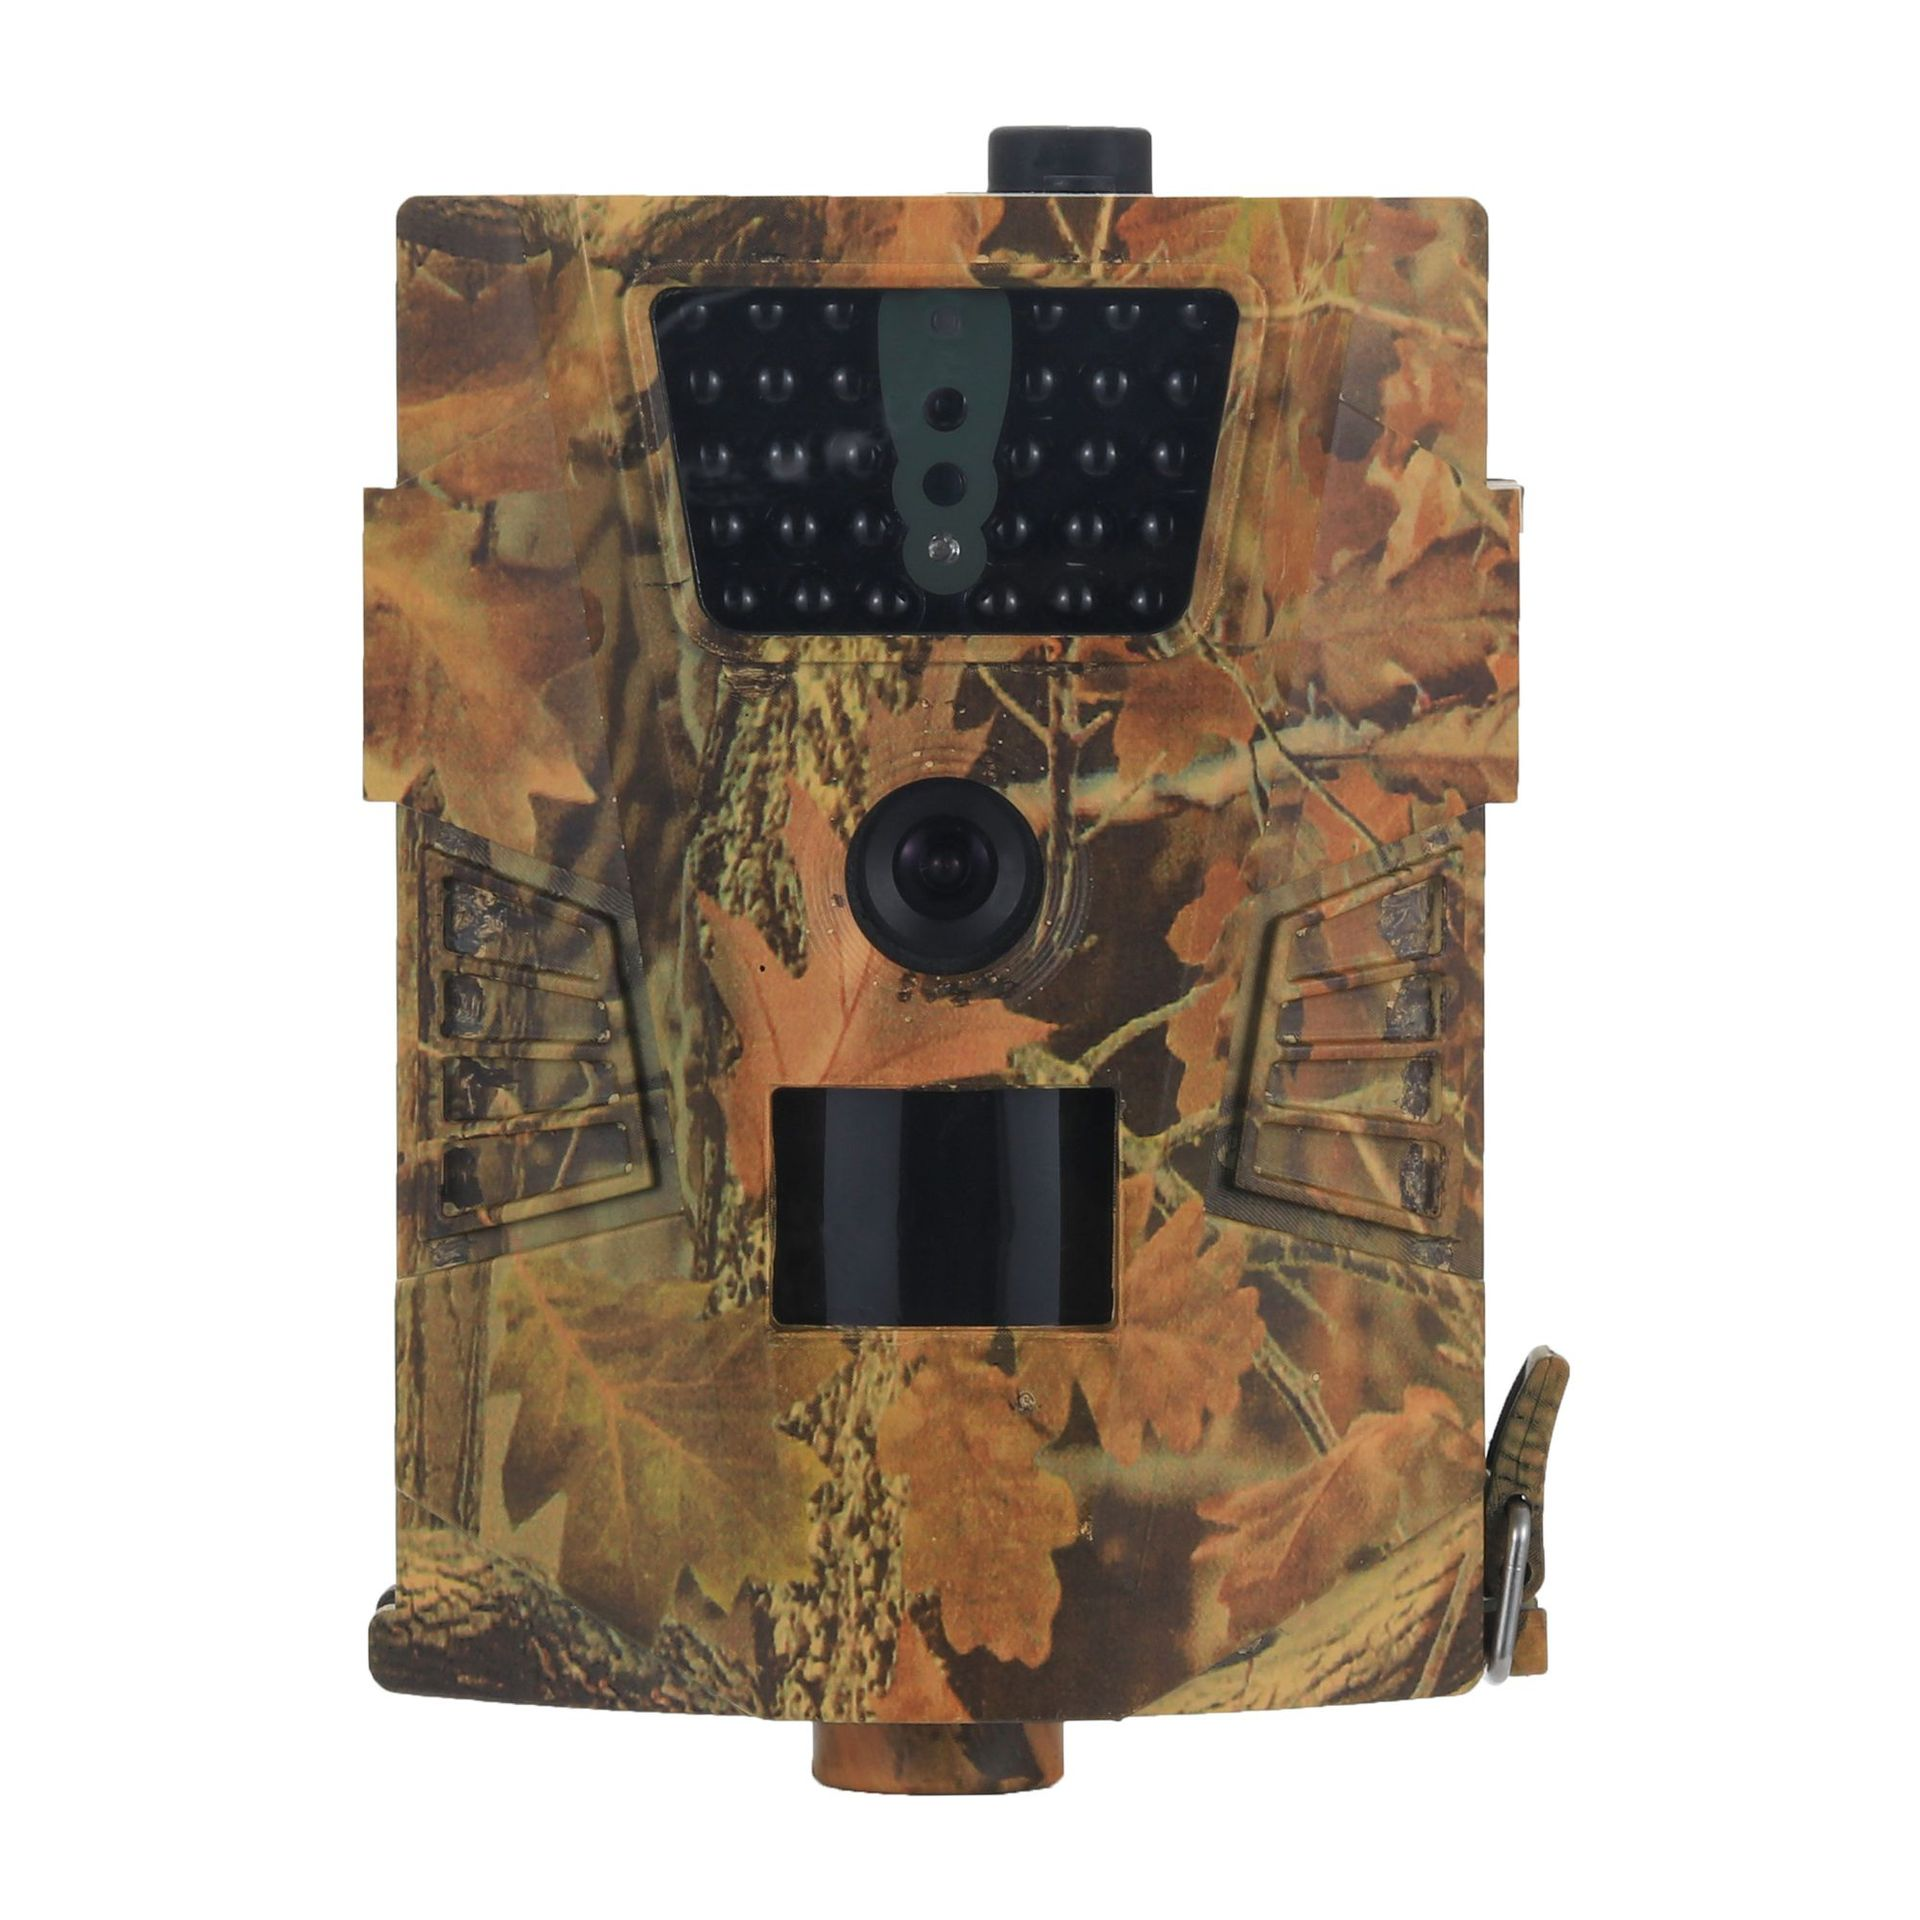 Hunting Camera Plug and Play 1080P HD Surveillance Camera Infrared Thermal Night Vision Camera Dead Leaves Camo